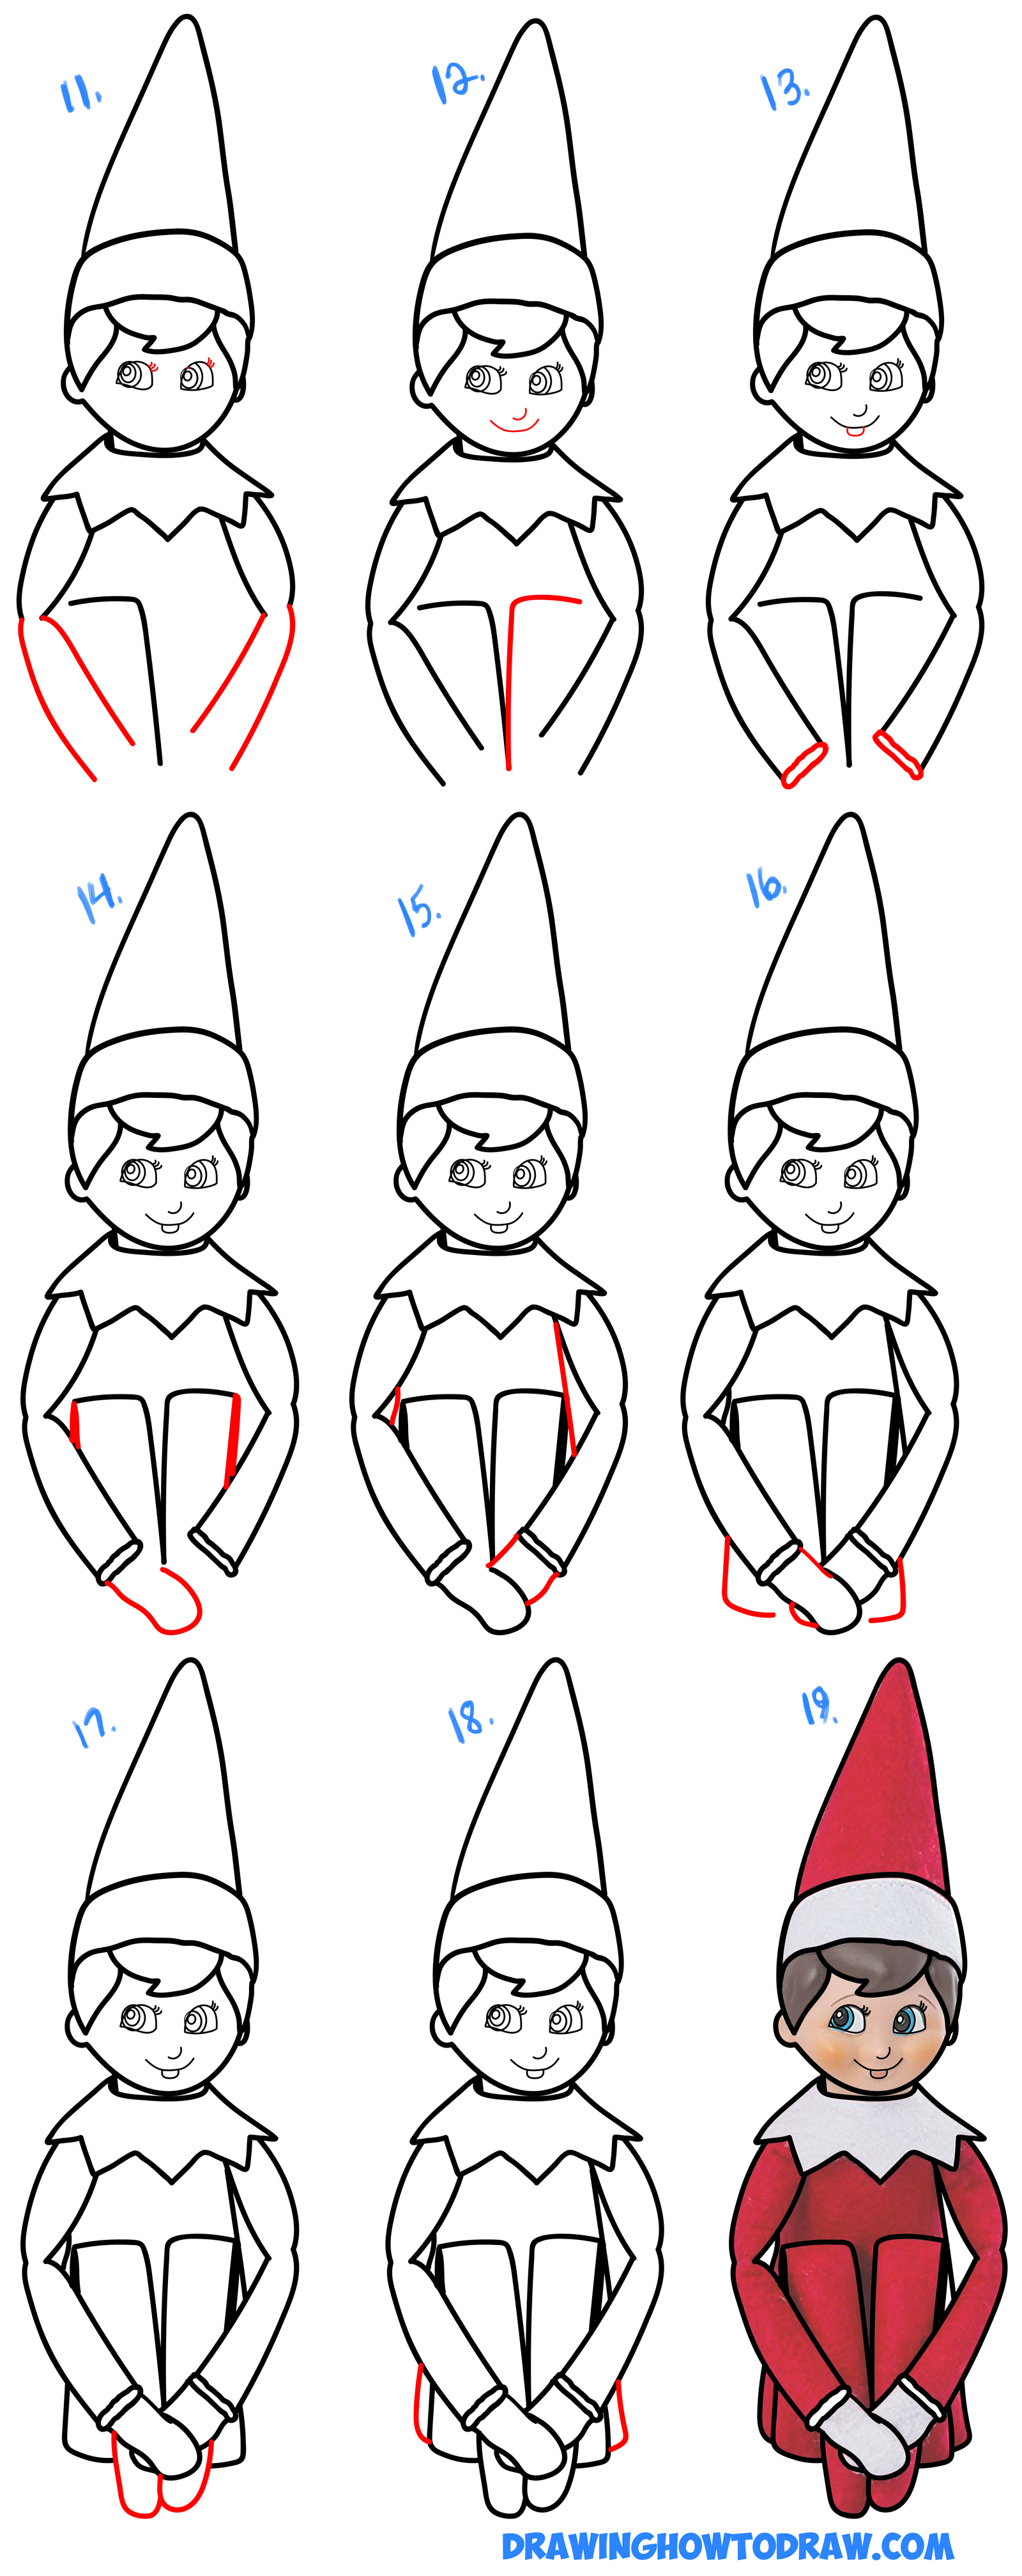 Learn How to Draw The Elf On The Shelf Simple Steps Drawing Lesson for Kids & Beginners